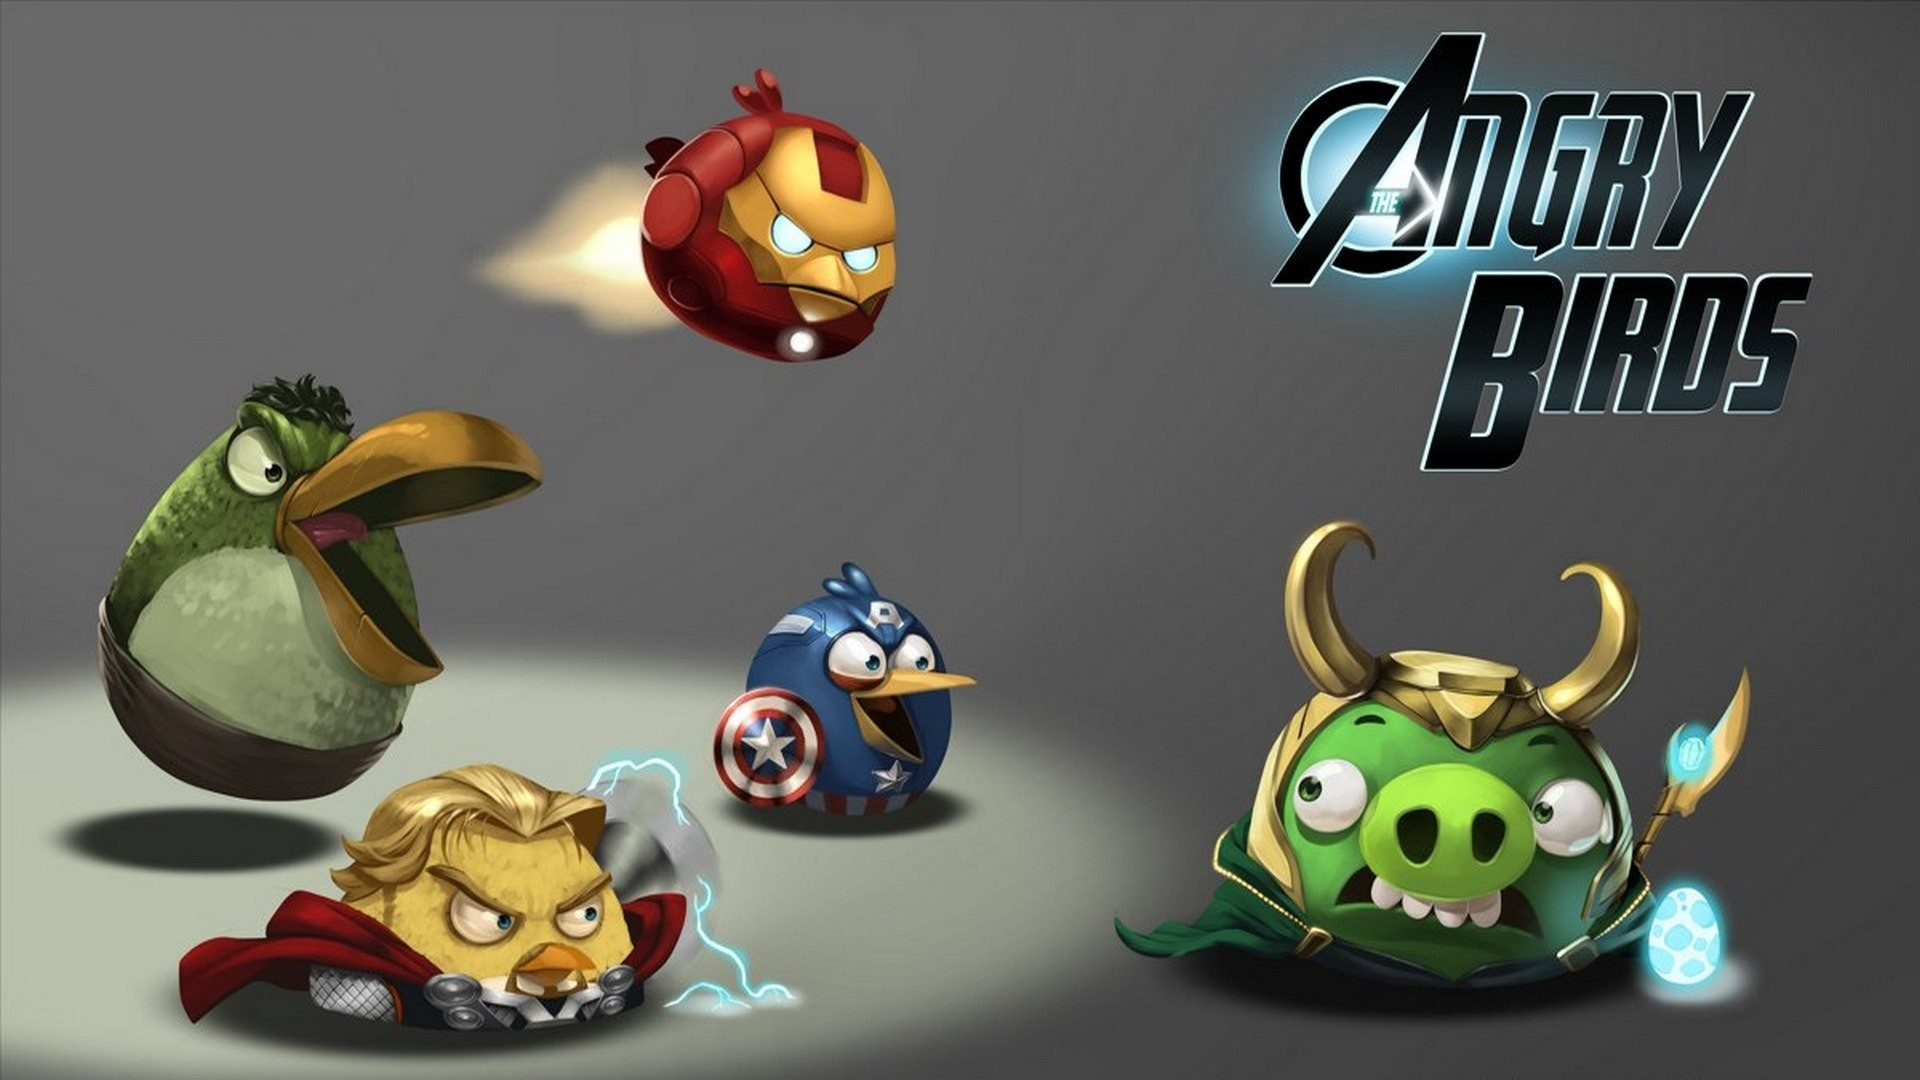 Angry birds full hd wallpaper and background image 1920x1080 id video game angry birds wallpaper voltagebd Choice Image